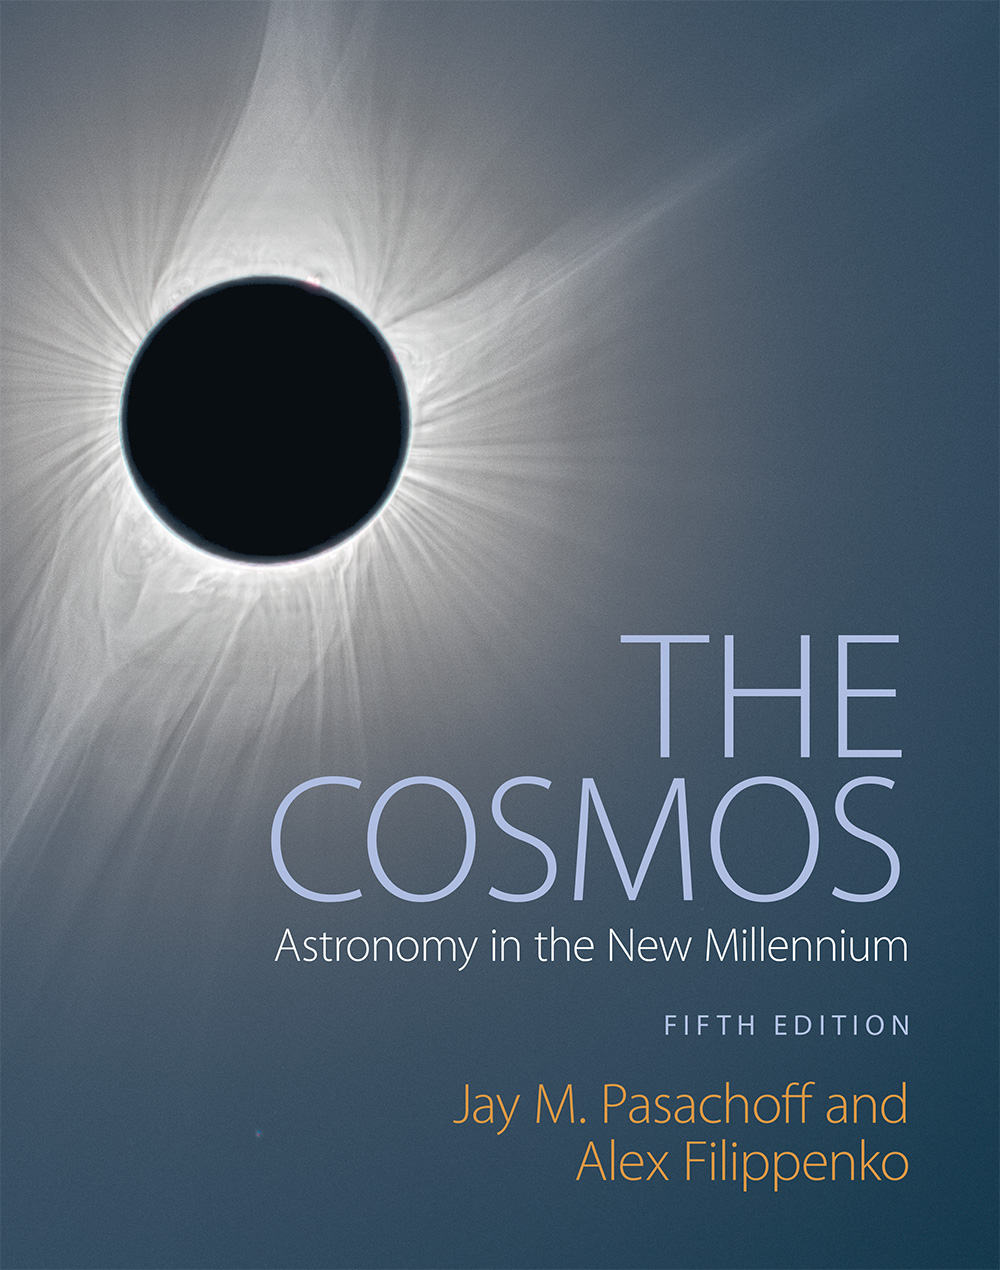 'The Cosmos' book cover